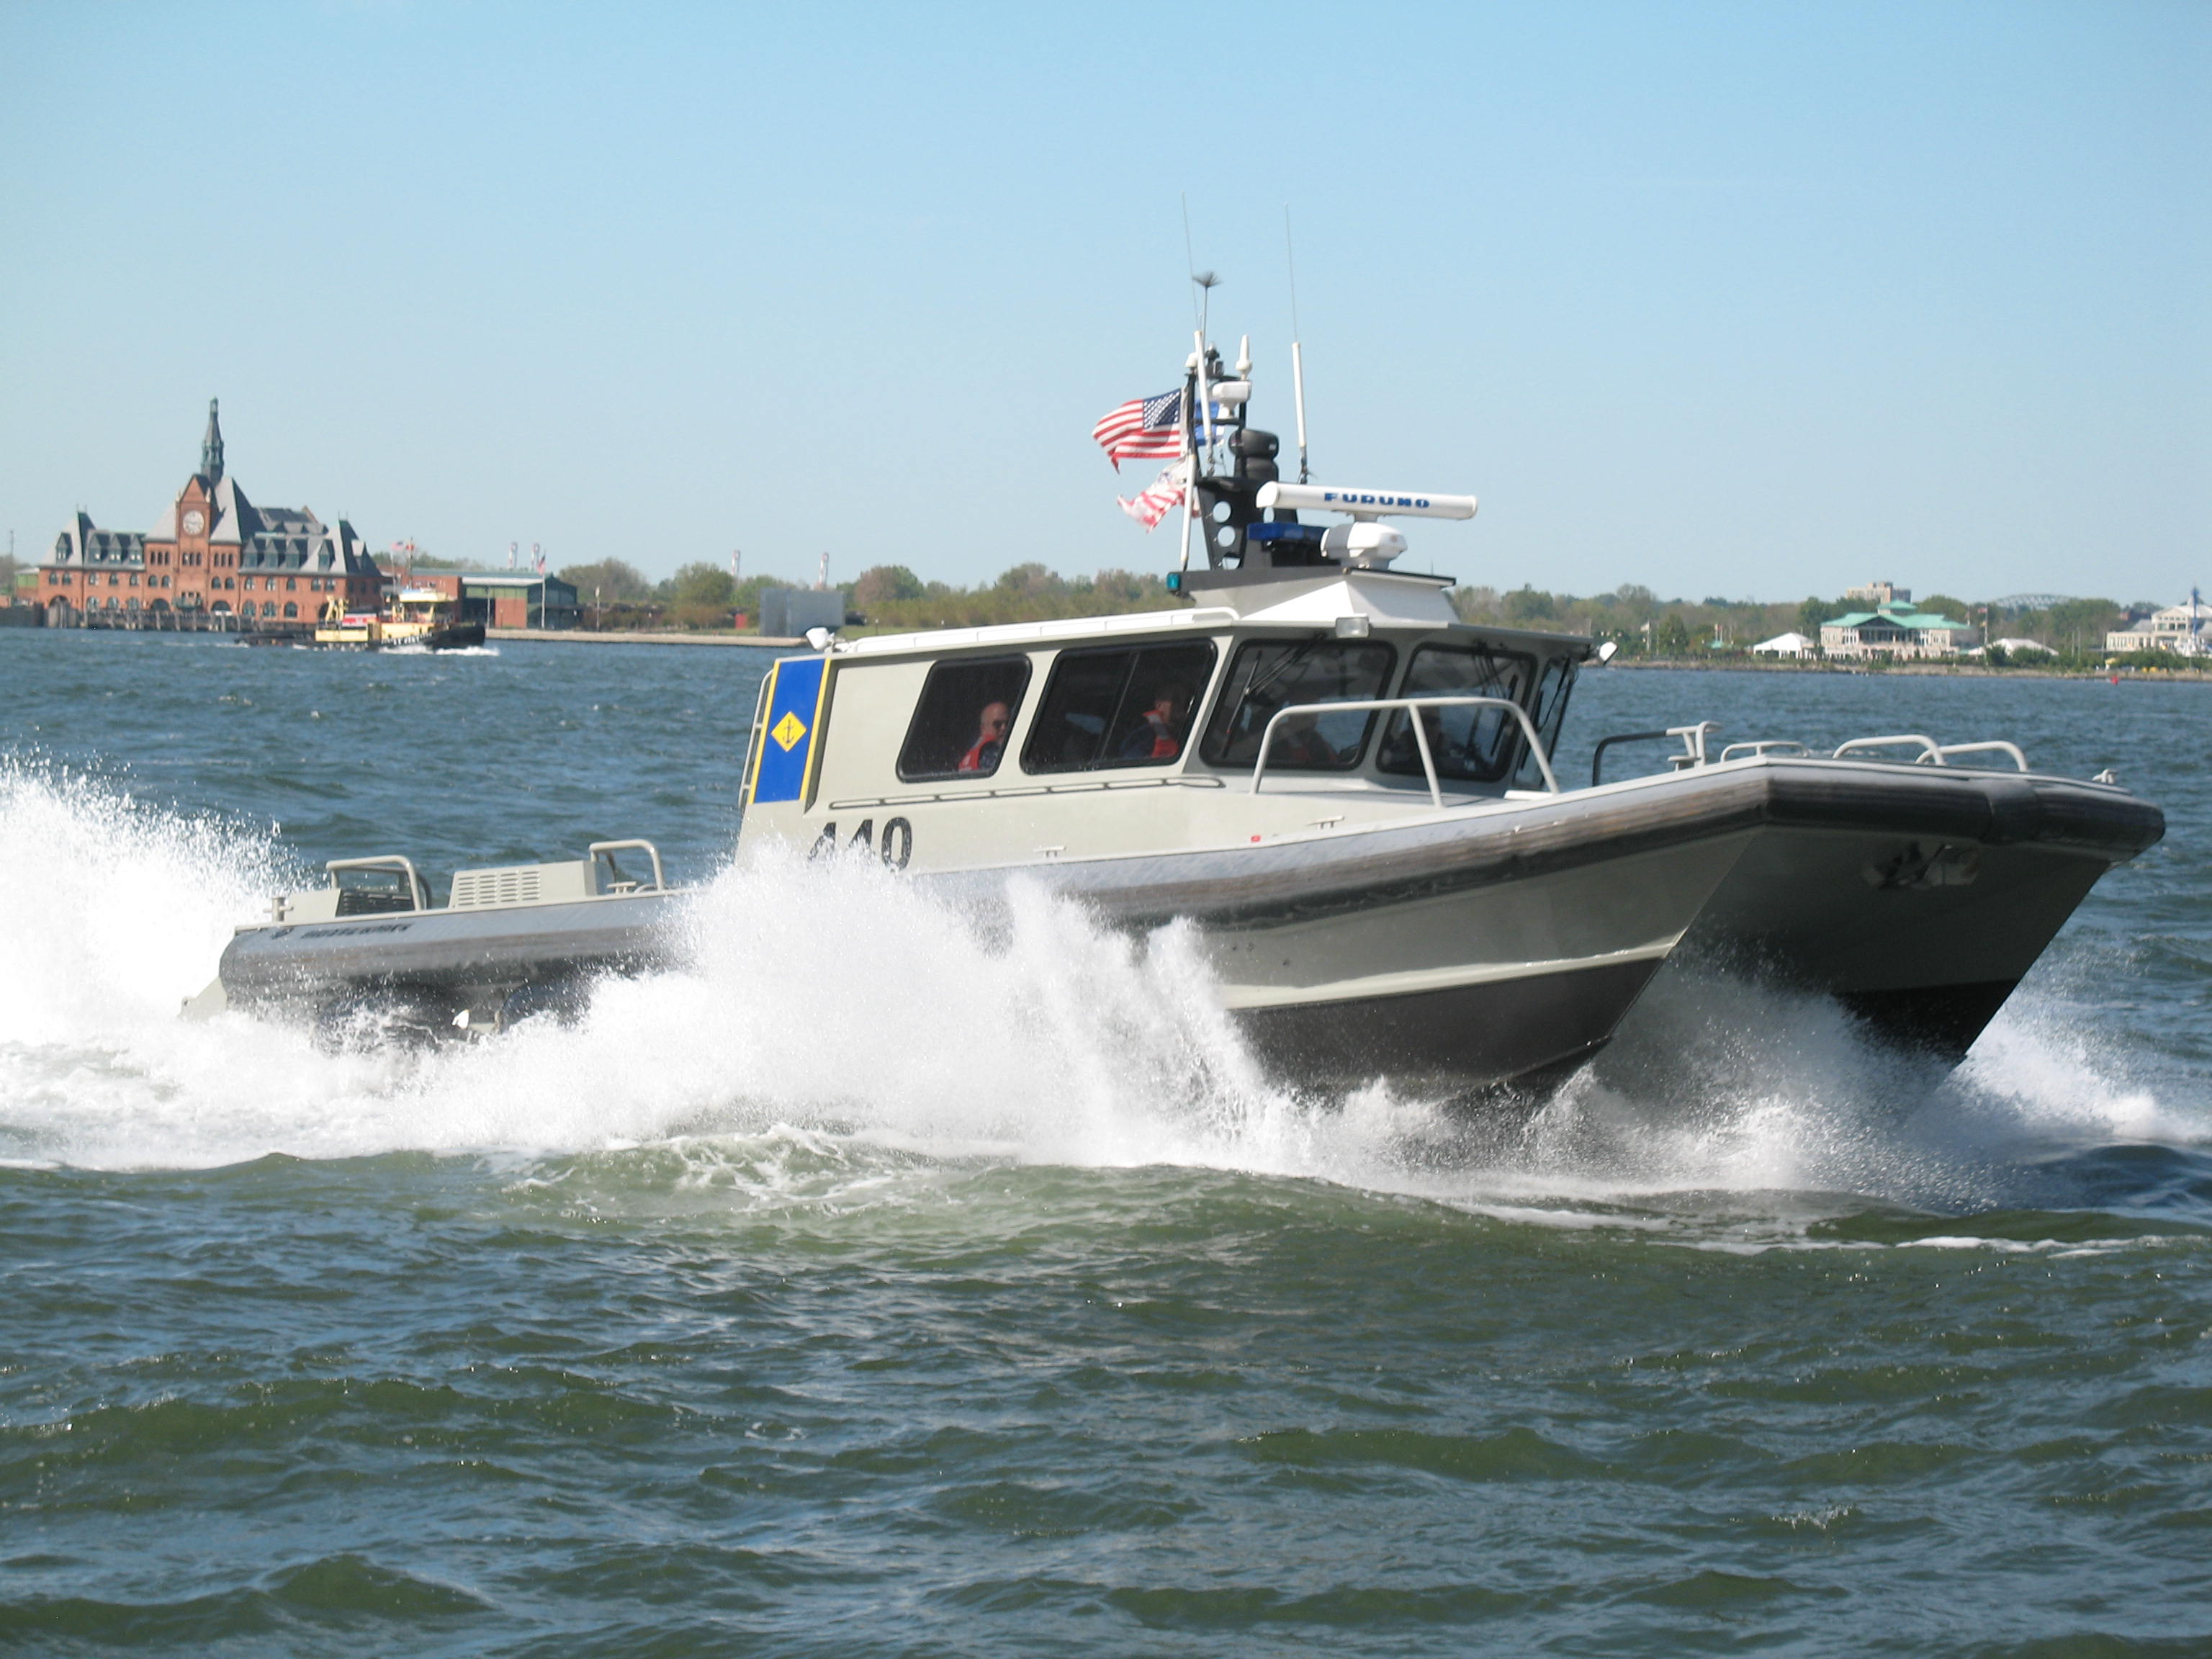 New York Naval Militia Military Emergency Boat Service